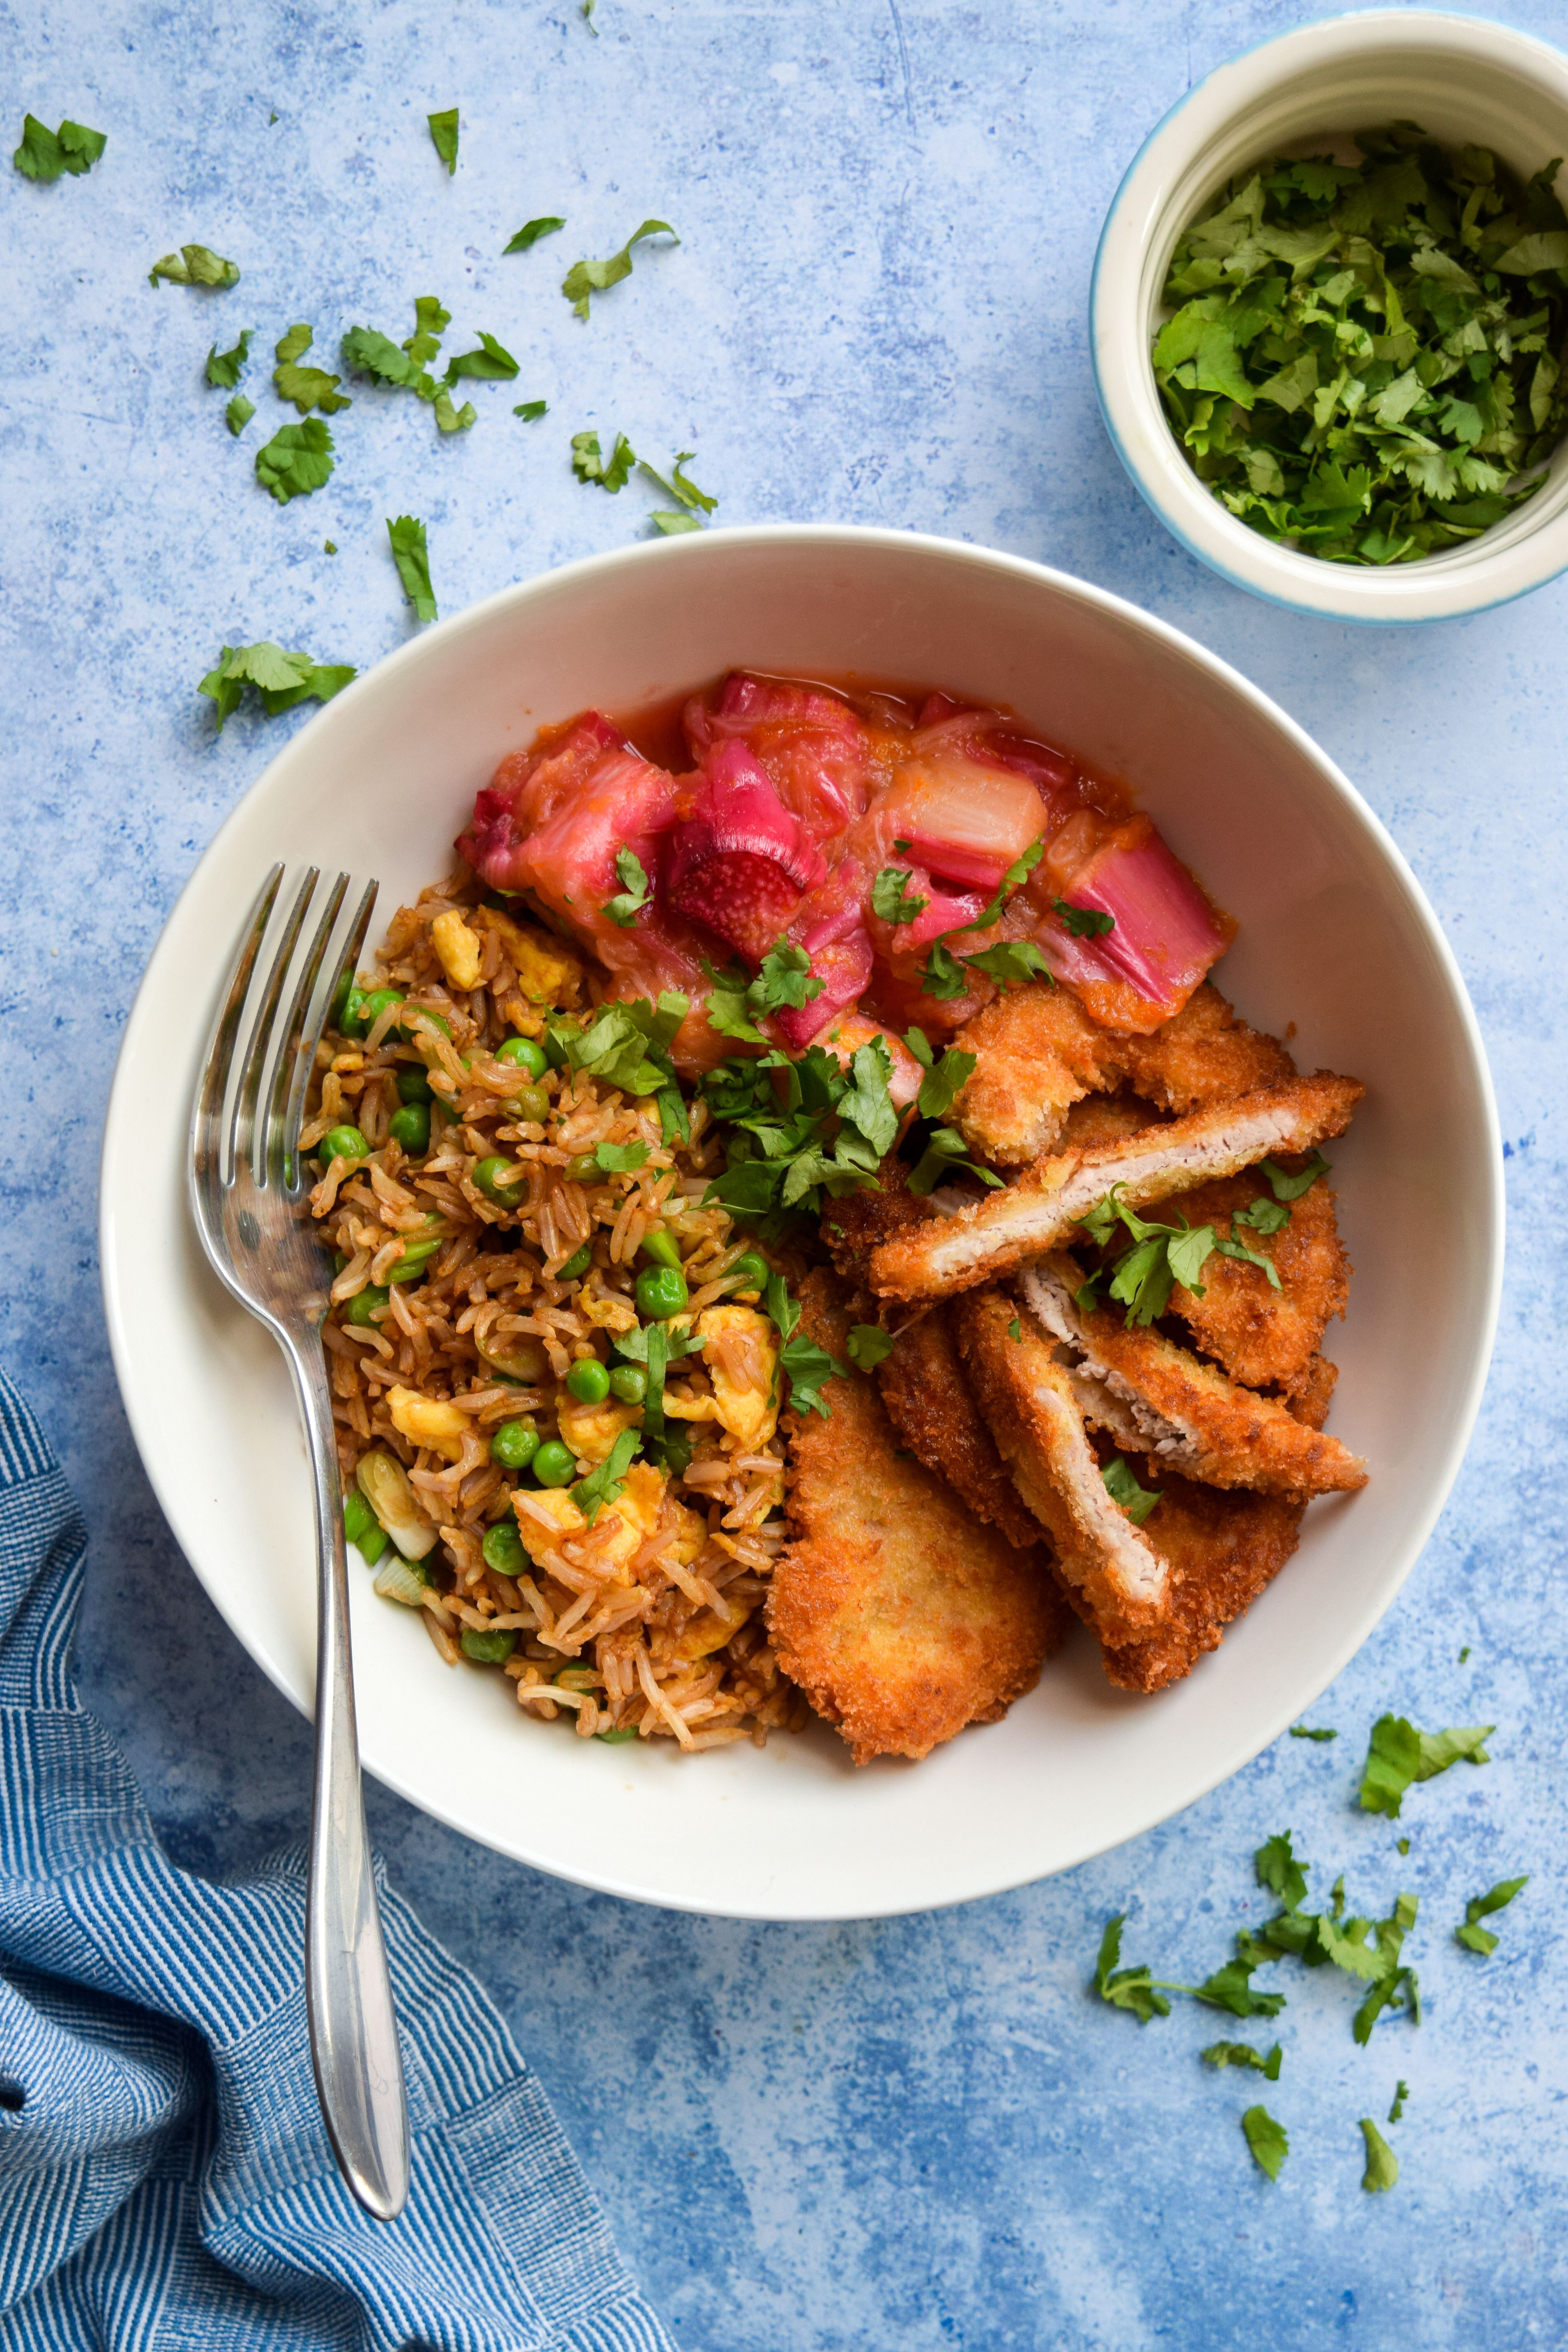 Crunchy Sweet and Sour Rhubarb Pork with Egg Fried Rice